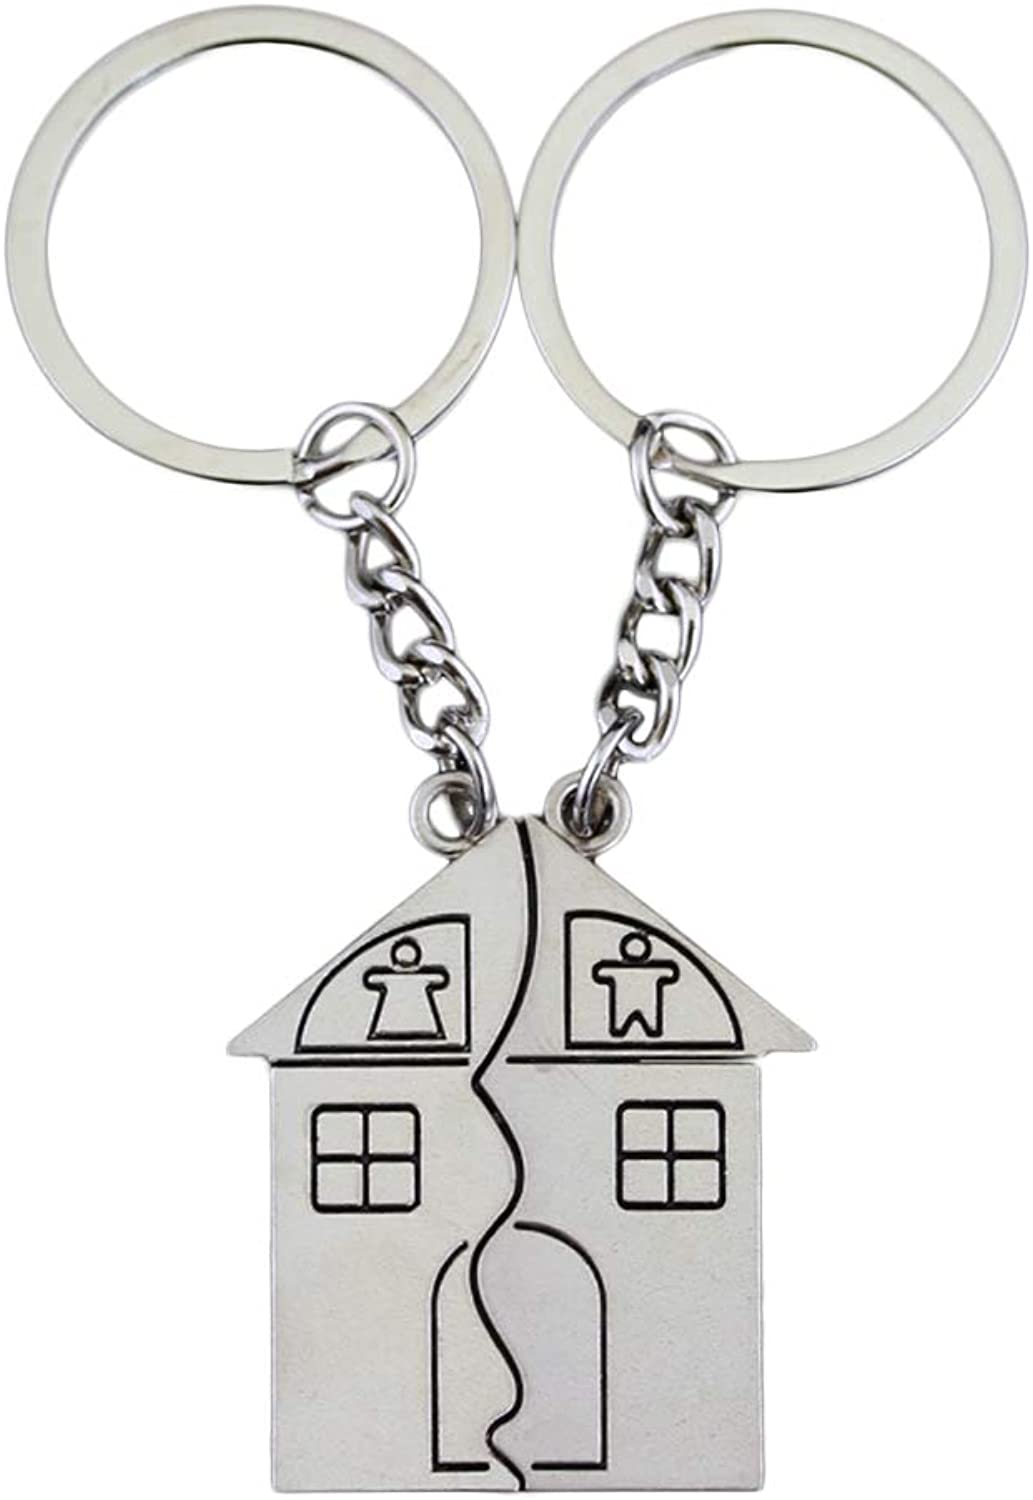 Vosarea 2PCS Couple House Keychains Set Alloy Plating Personality Creative Key Rings Jewelry Decor Gift for Men and Women